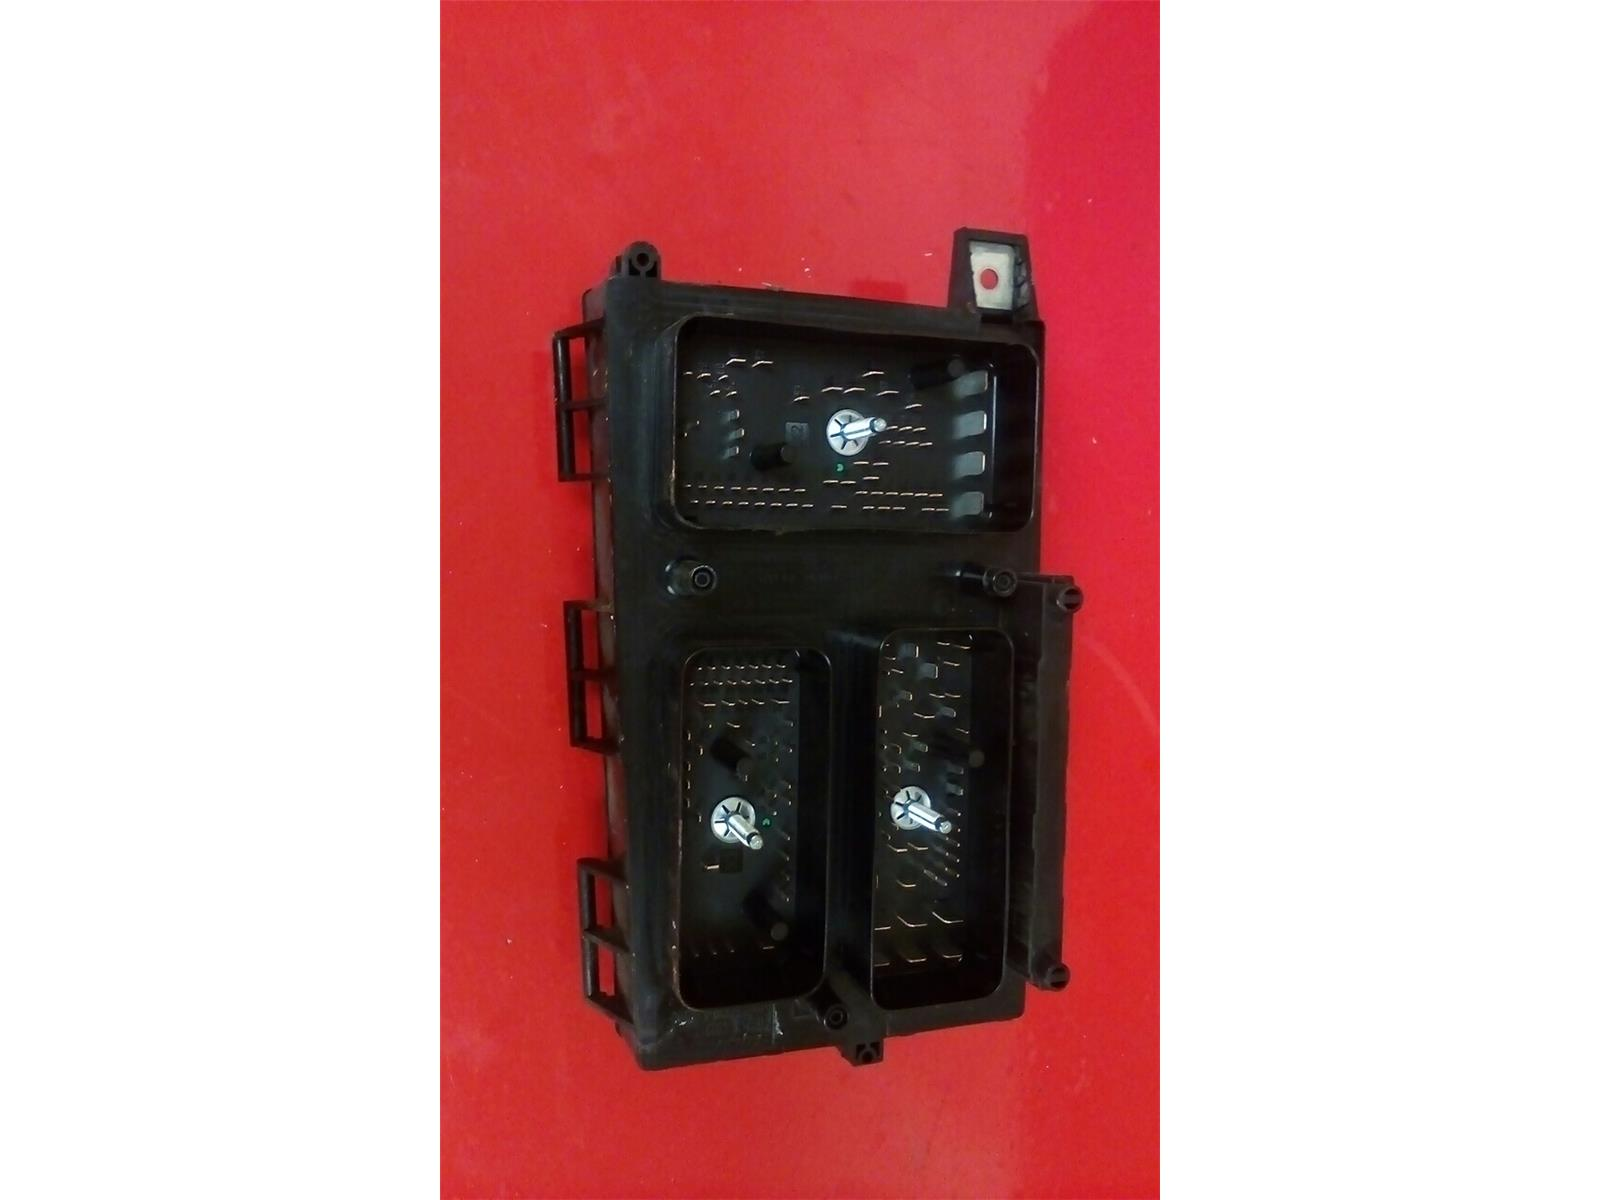 VAUXHALL ASTRA H MK5 FRONT BCM UEC ELECTRIC CONTROL BW FUSE BOX 2004-2010